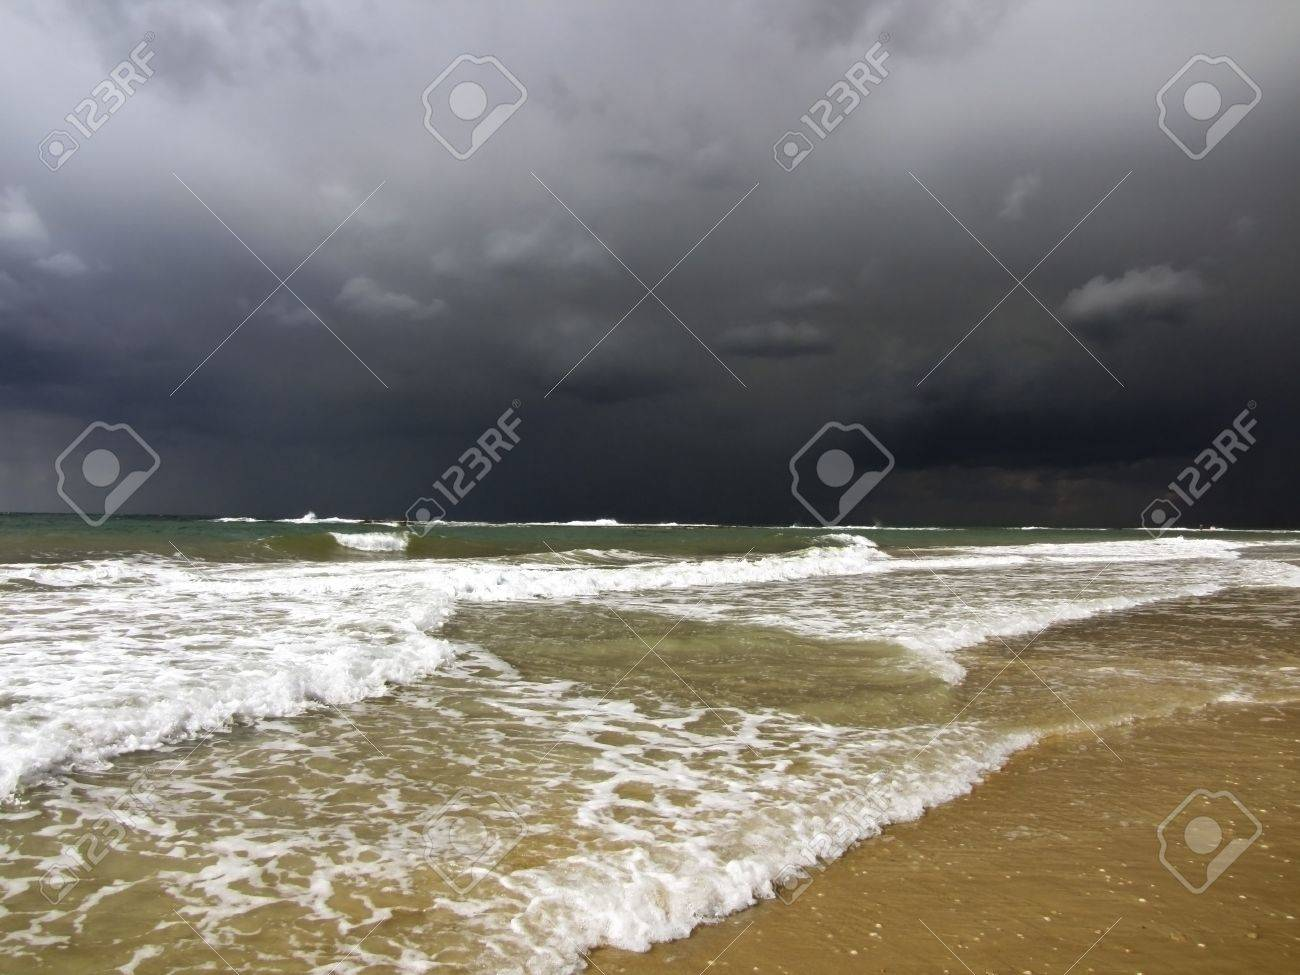 black storm clouds over the Mediterranean Sea and the waves incident on the beach Stock Photo - 12179749